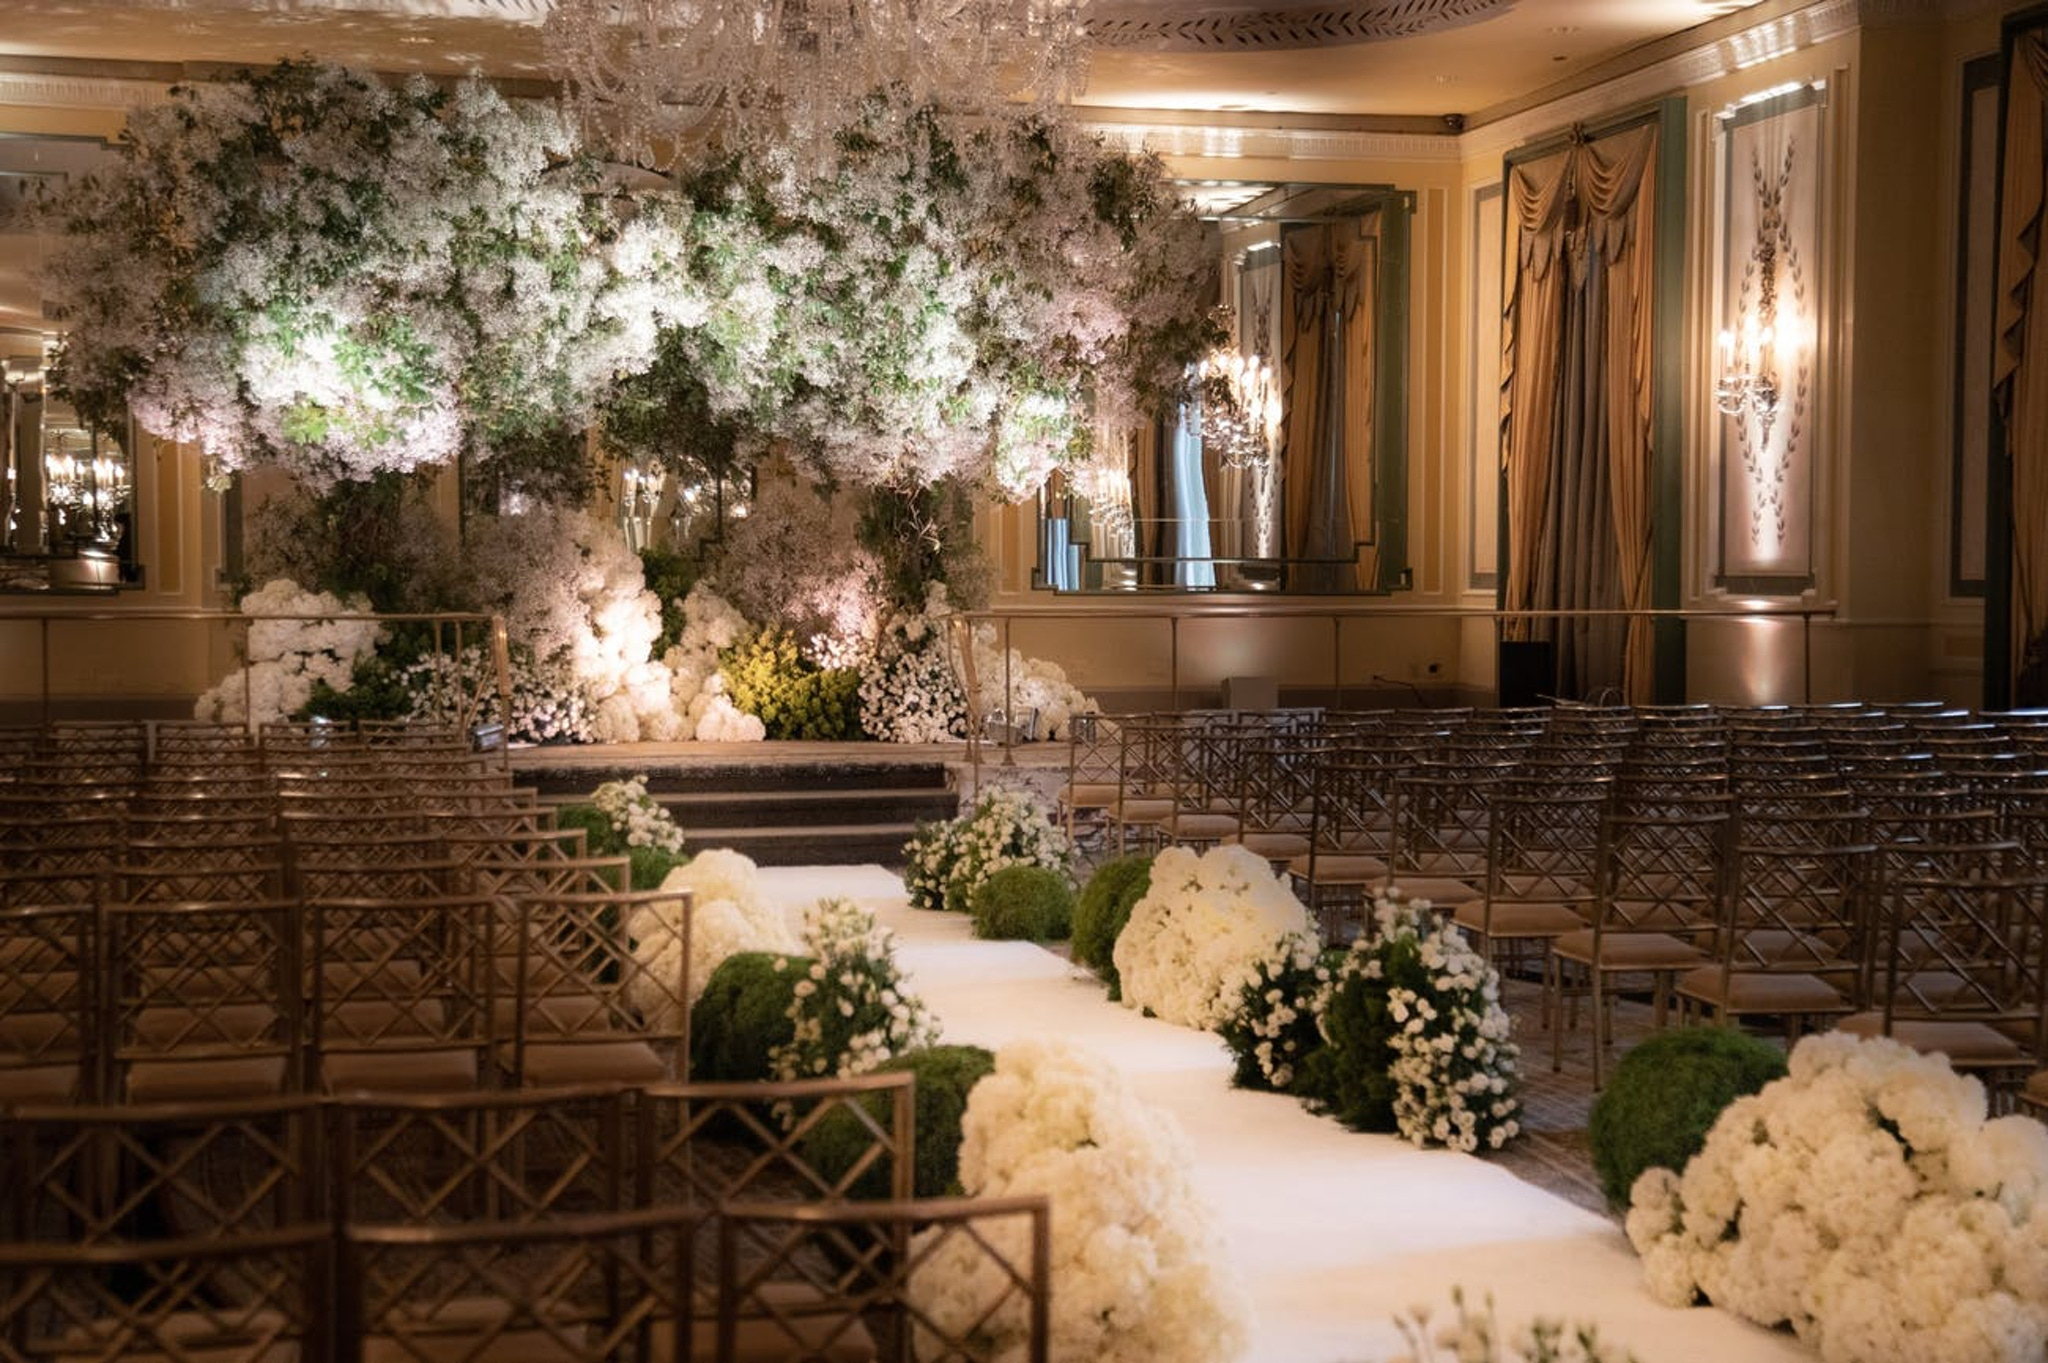 indoor wedding ceremony with white flowers and greenery and an aisle filled with white flower petals